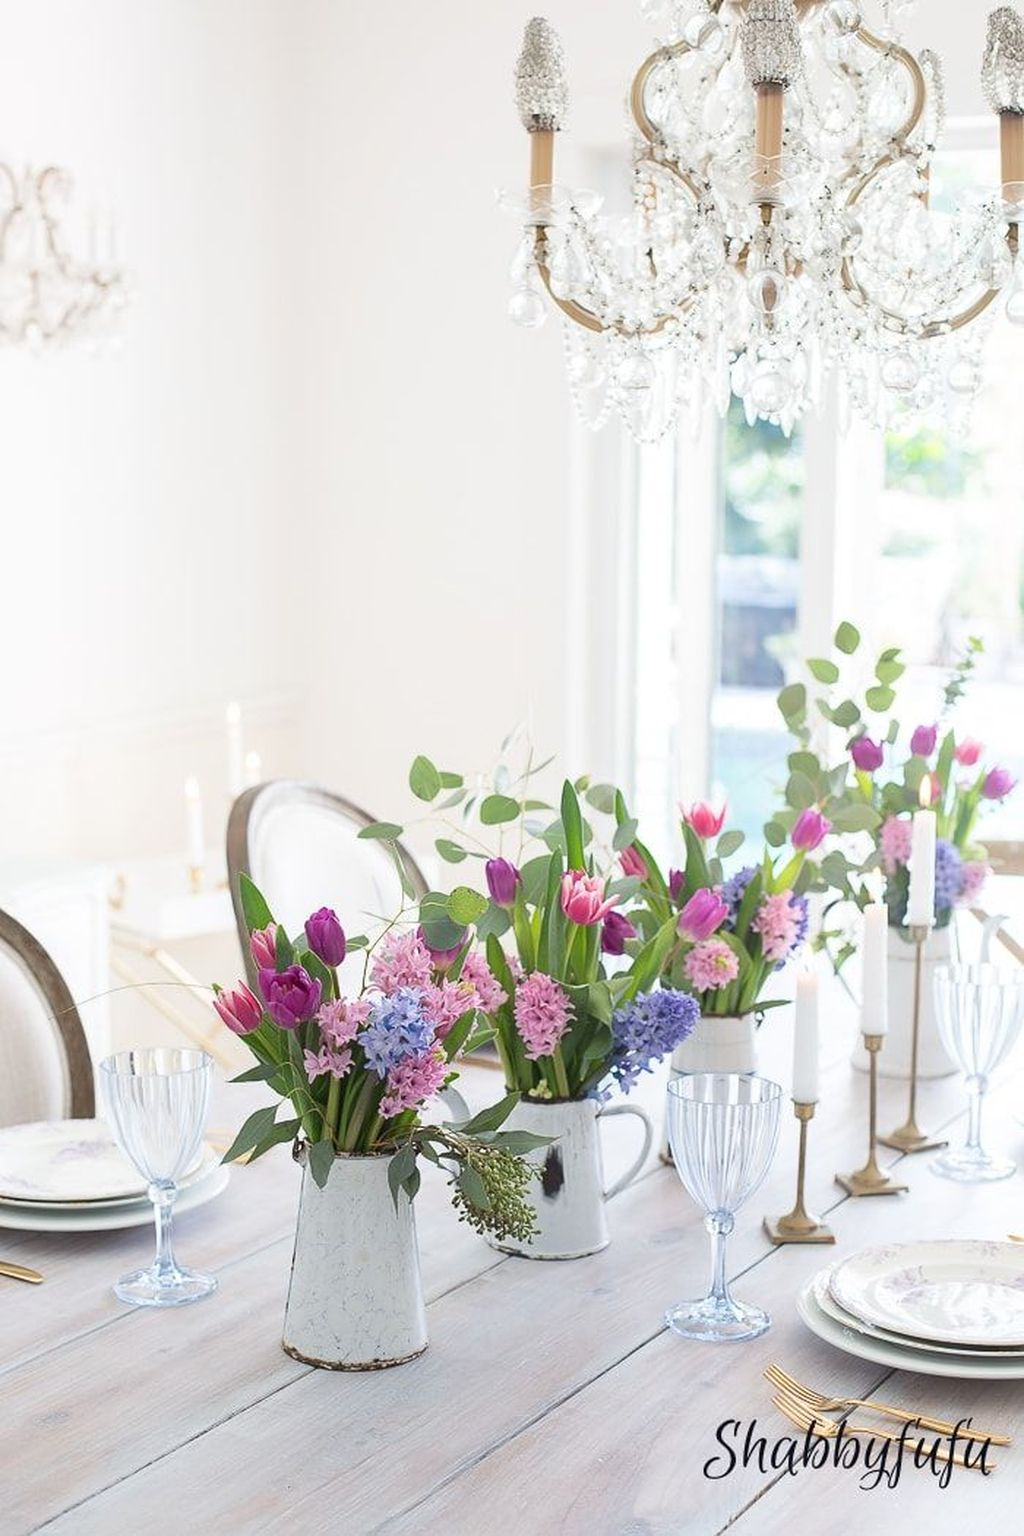 Stunning Romantic Dining Room Decor Ideas Best For Valentines Day 18